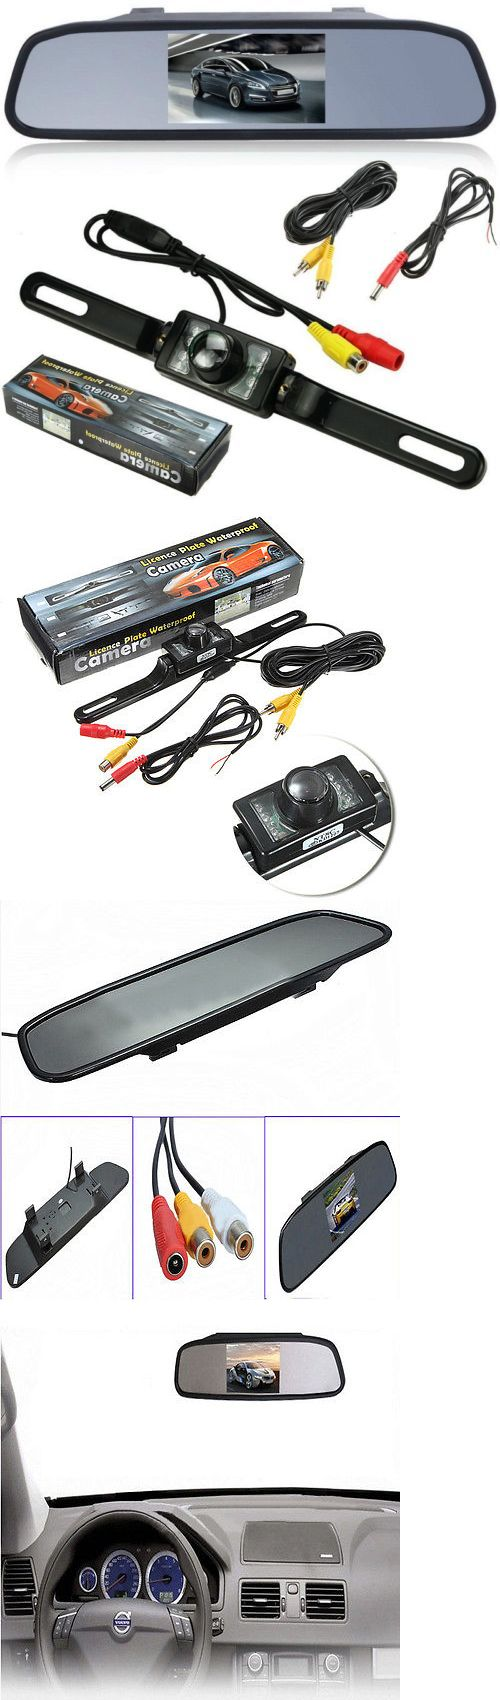 Rear View Monitors Cams and Kits: 4.3 Tft Lcd Rear View Mirror Monitor Led Reverse Car Parking Backup Camera Us -> BUY IT NOW ONLY: $30.8 on eBay!